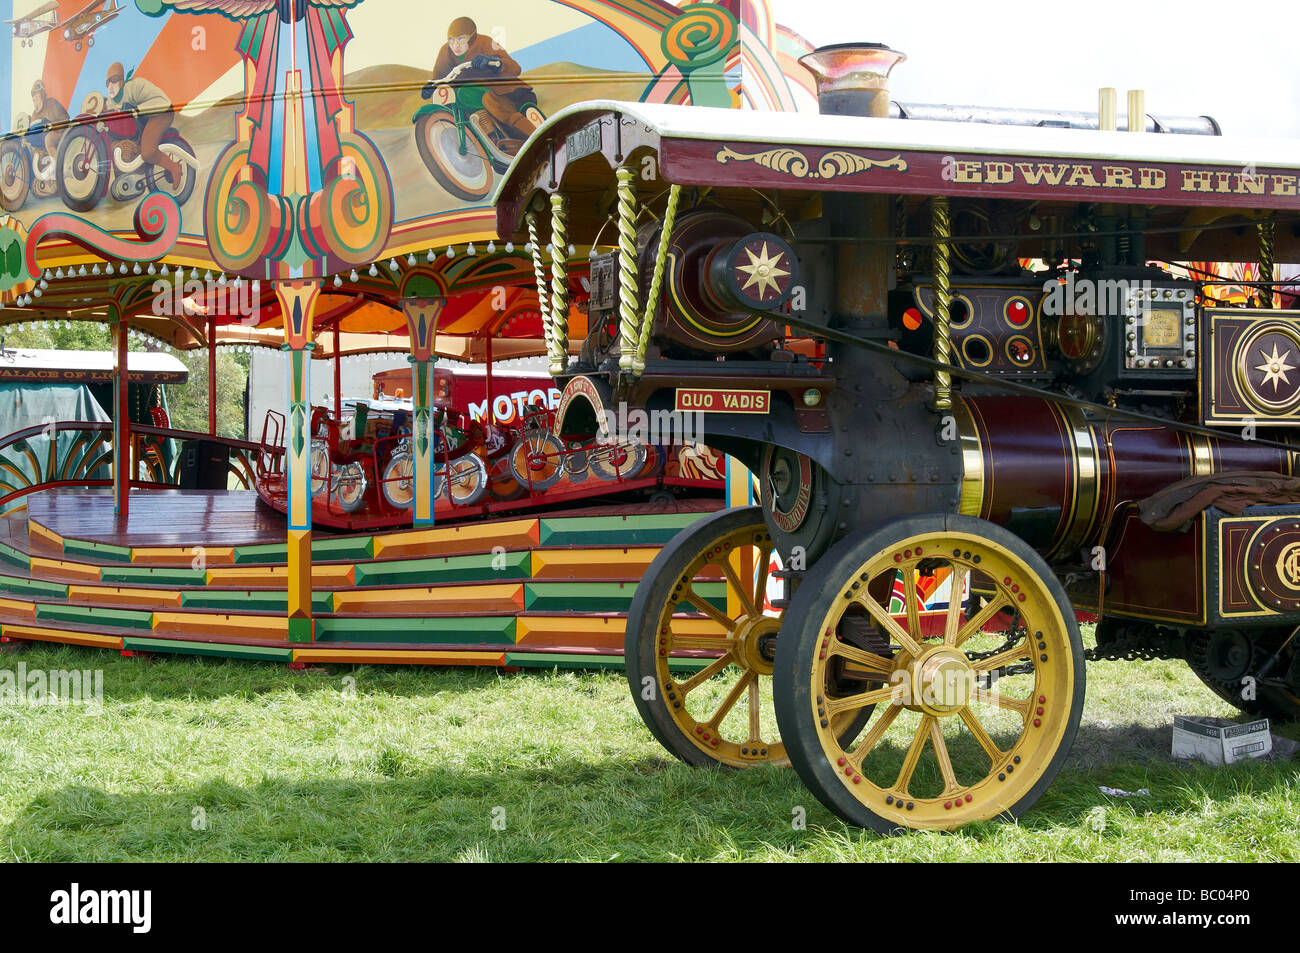 Burrell showman's engine and traditional fairground ride at a country fair in Hampshire, England - Stock Image